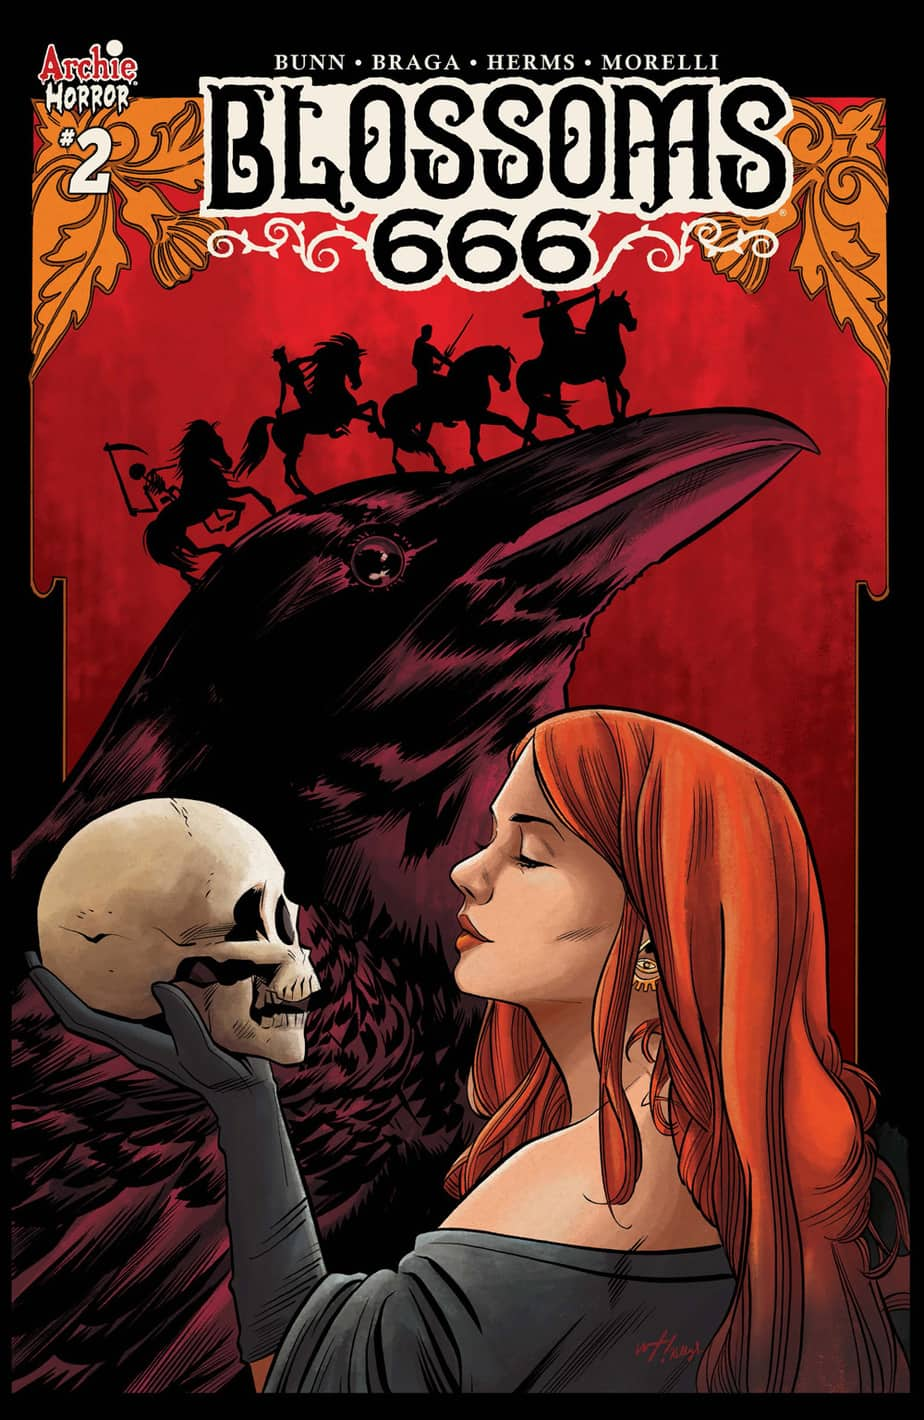 BLOSSOMS 666 #2 – Variant Cover by Wilfredo Torres